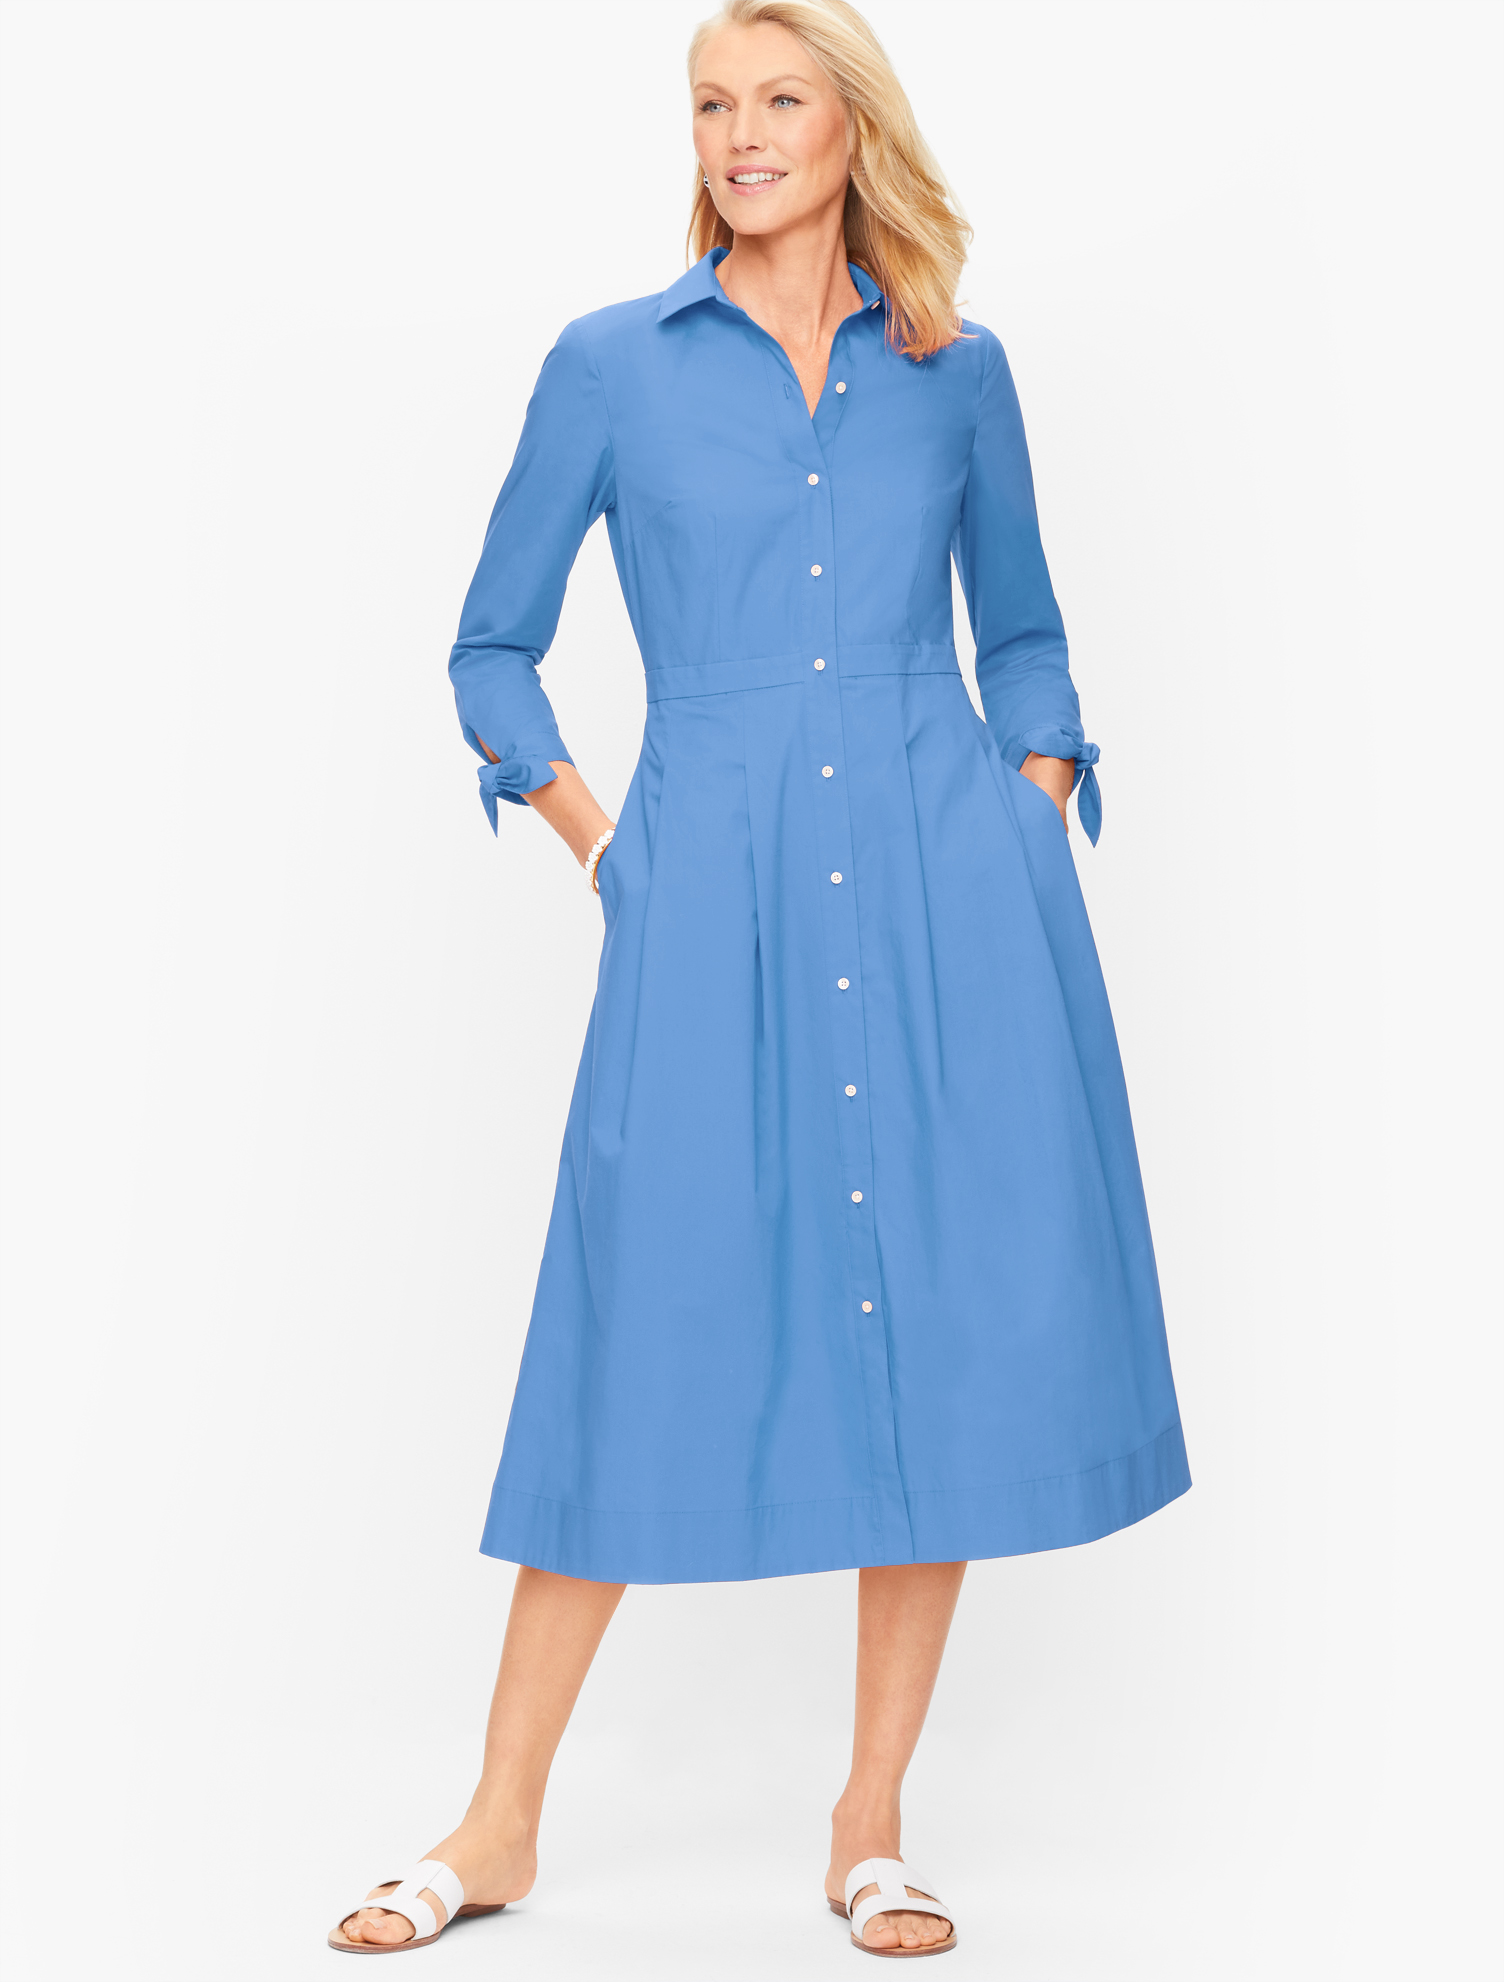 1940s Dress Styles Poplin Shirtdress - Larkspurs Blue - 22 - 100 Cotton Talbots $149.00 AT vintagedancer.com